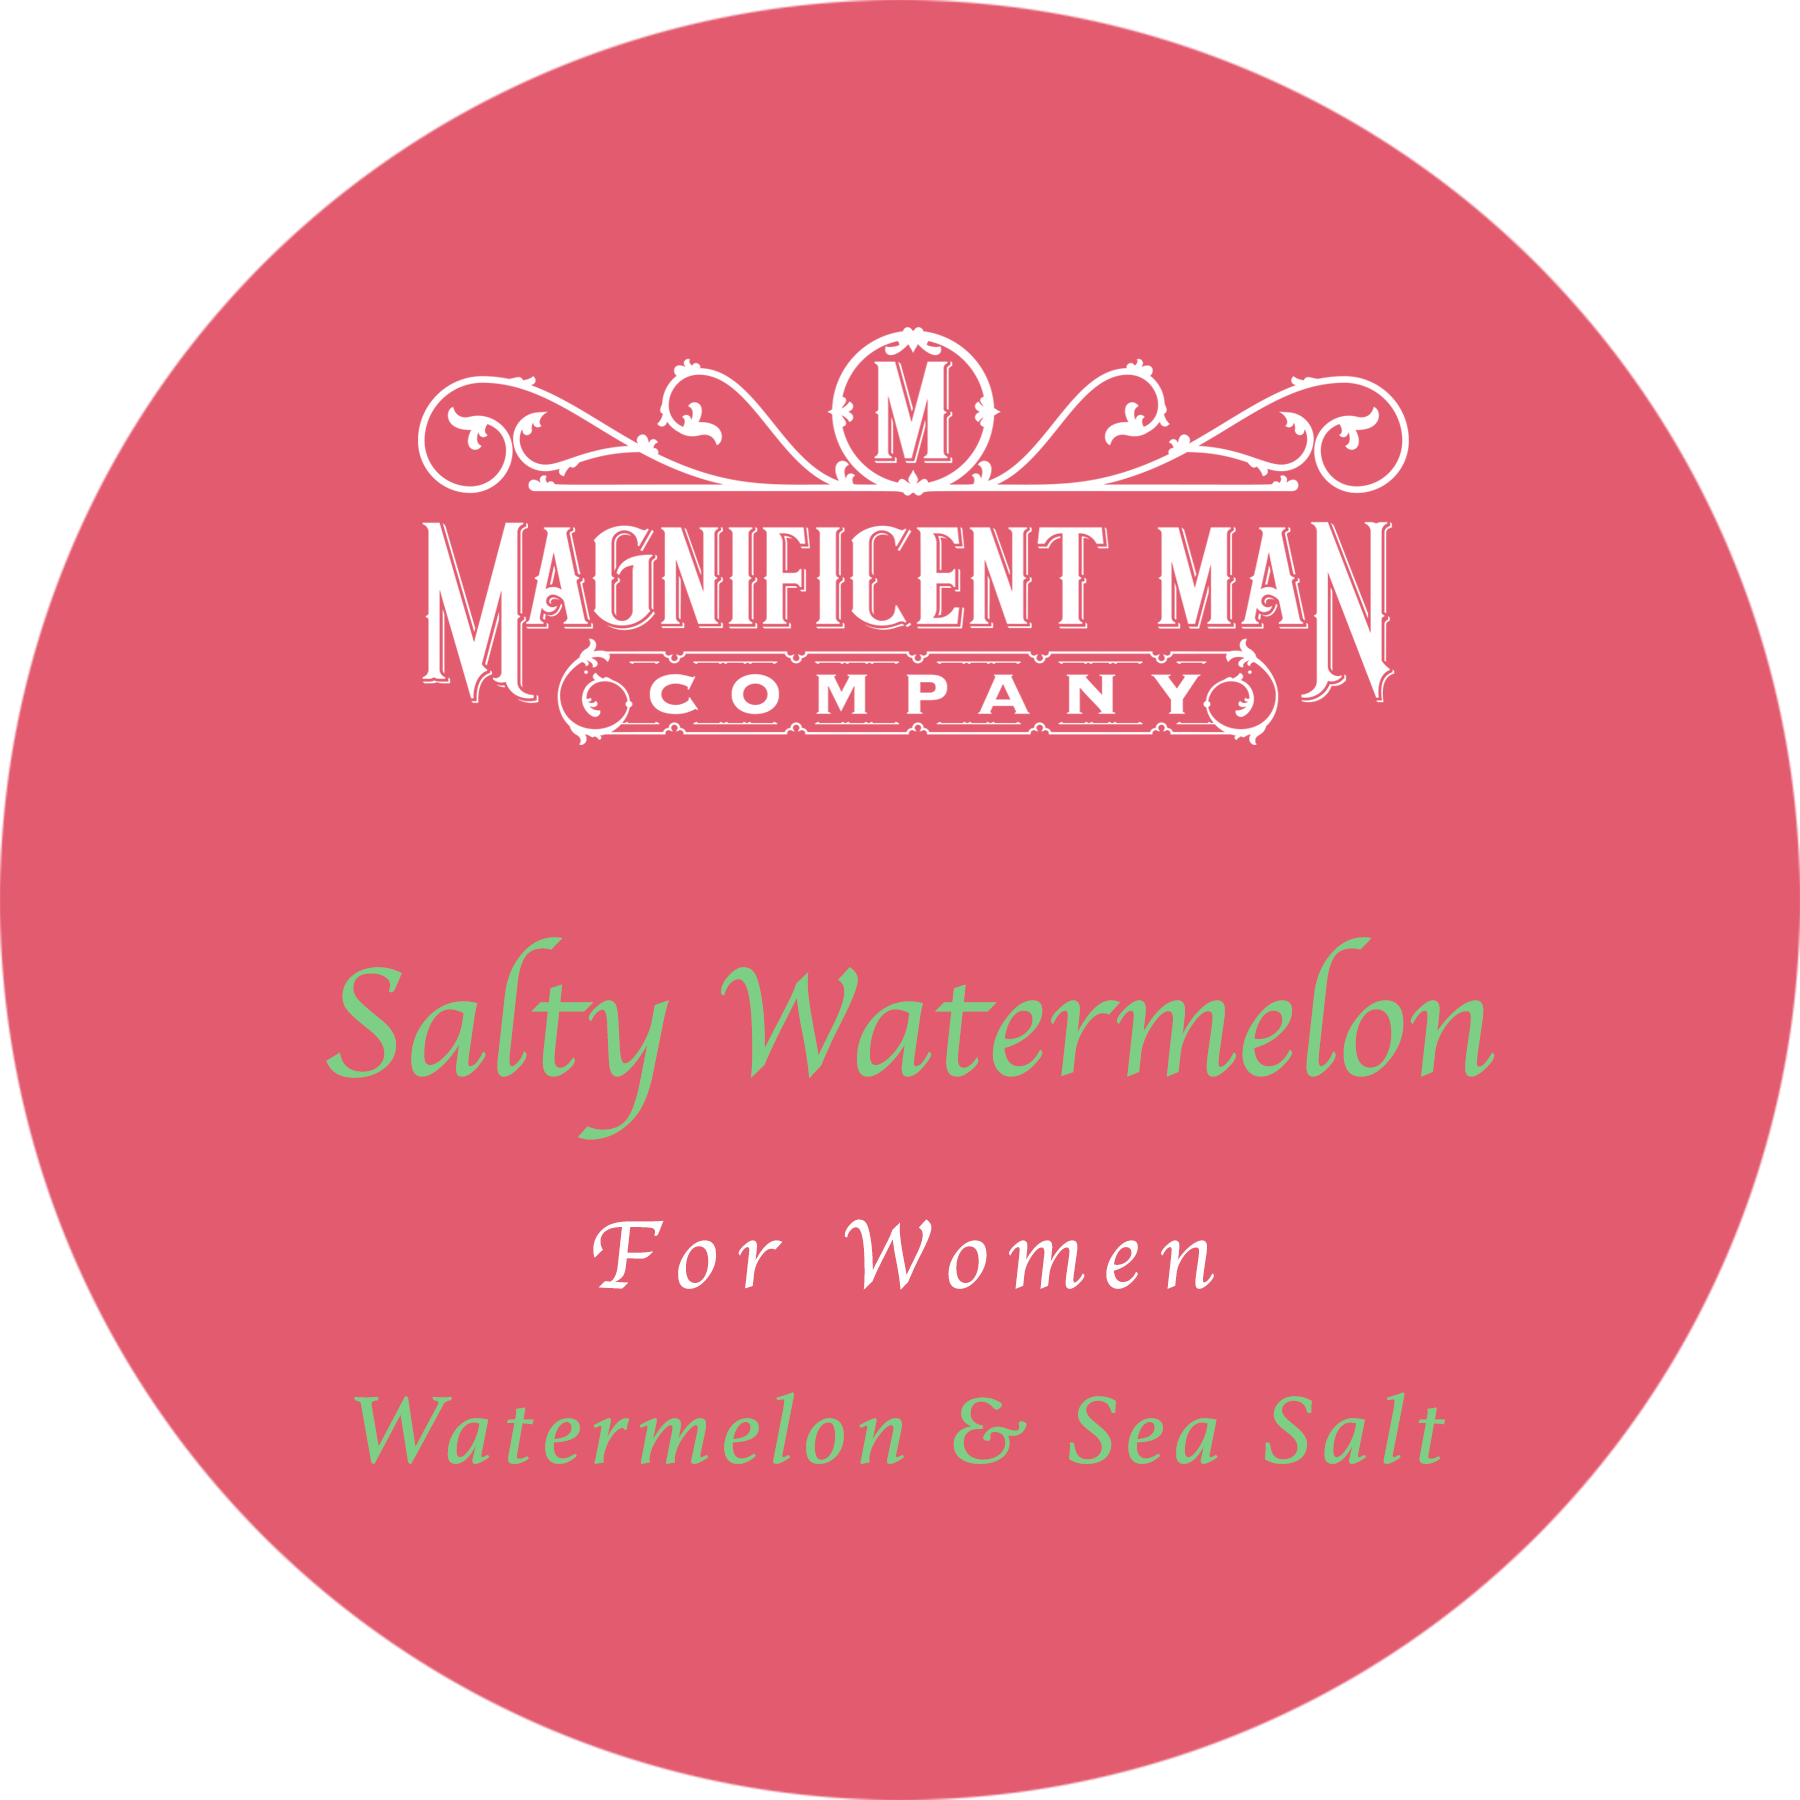 Salty Watermelon